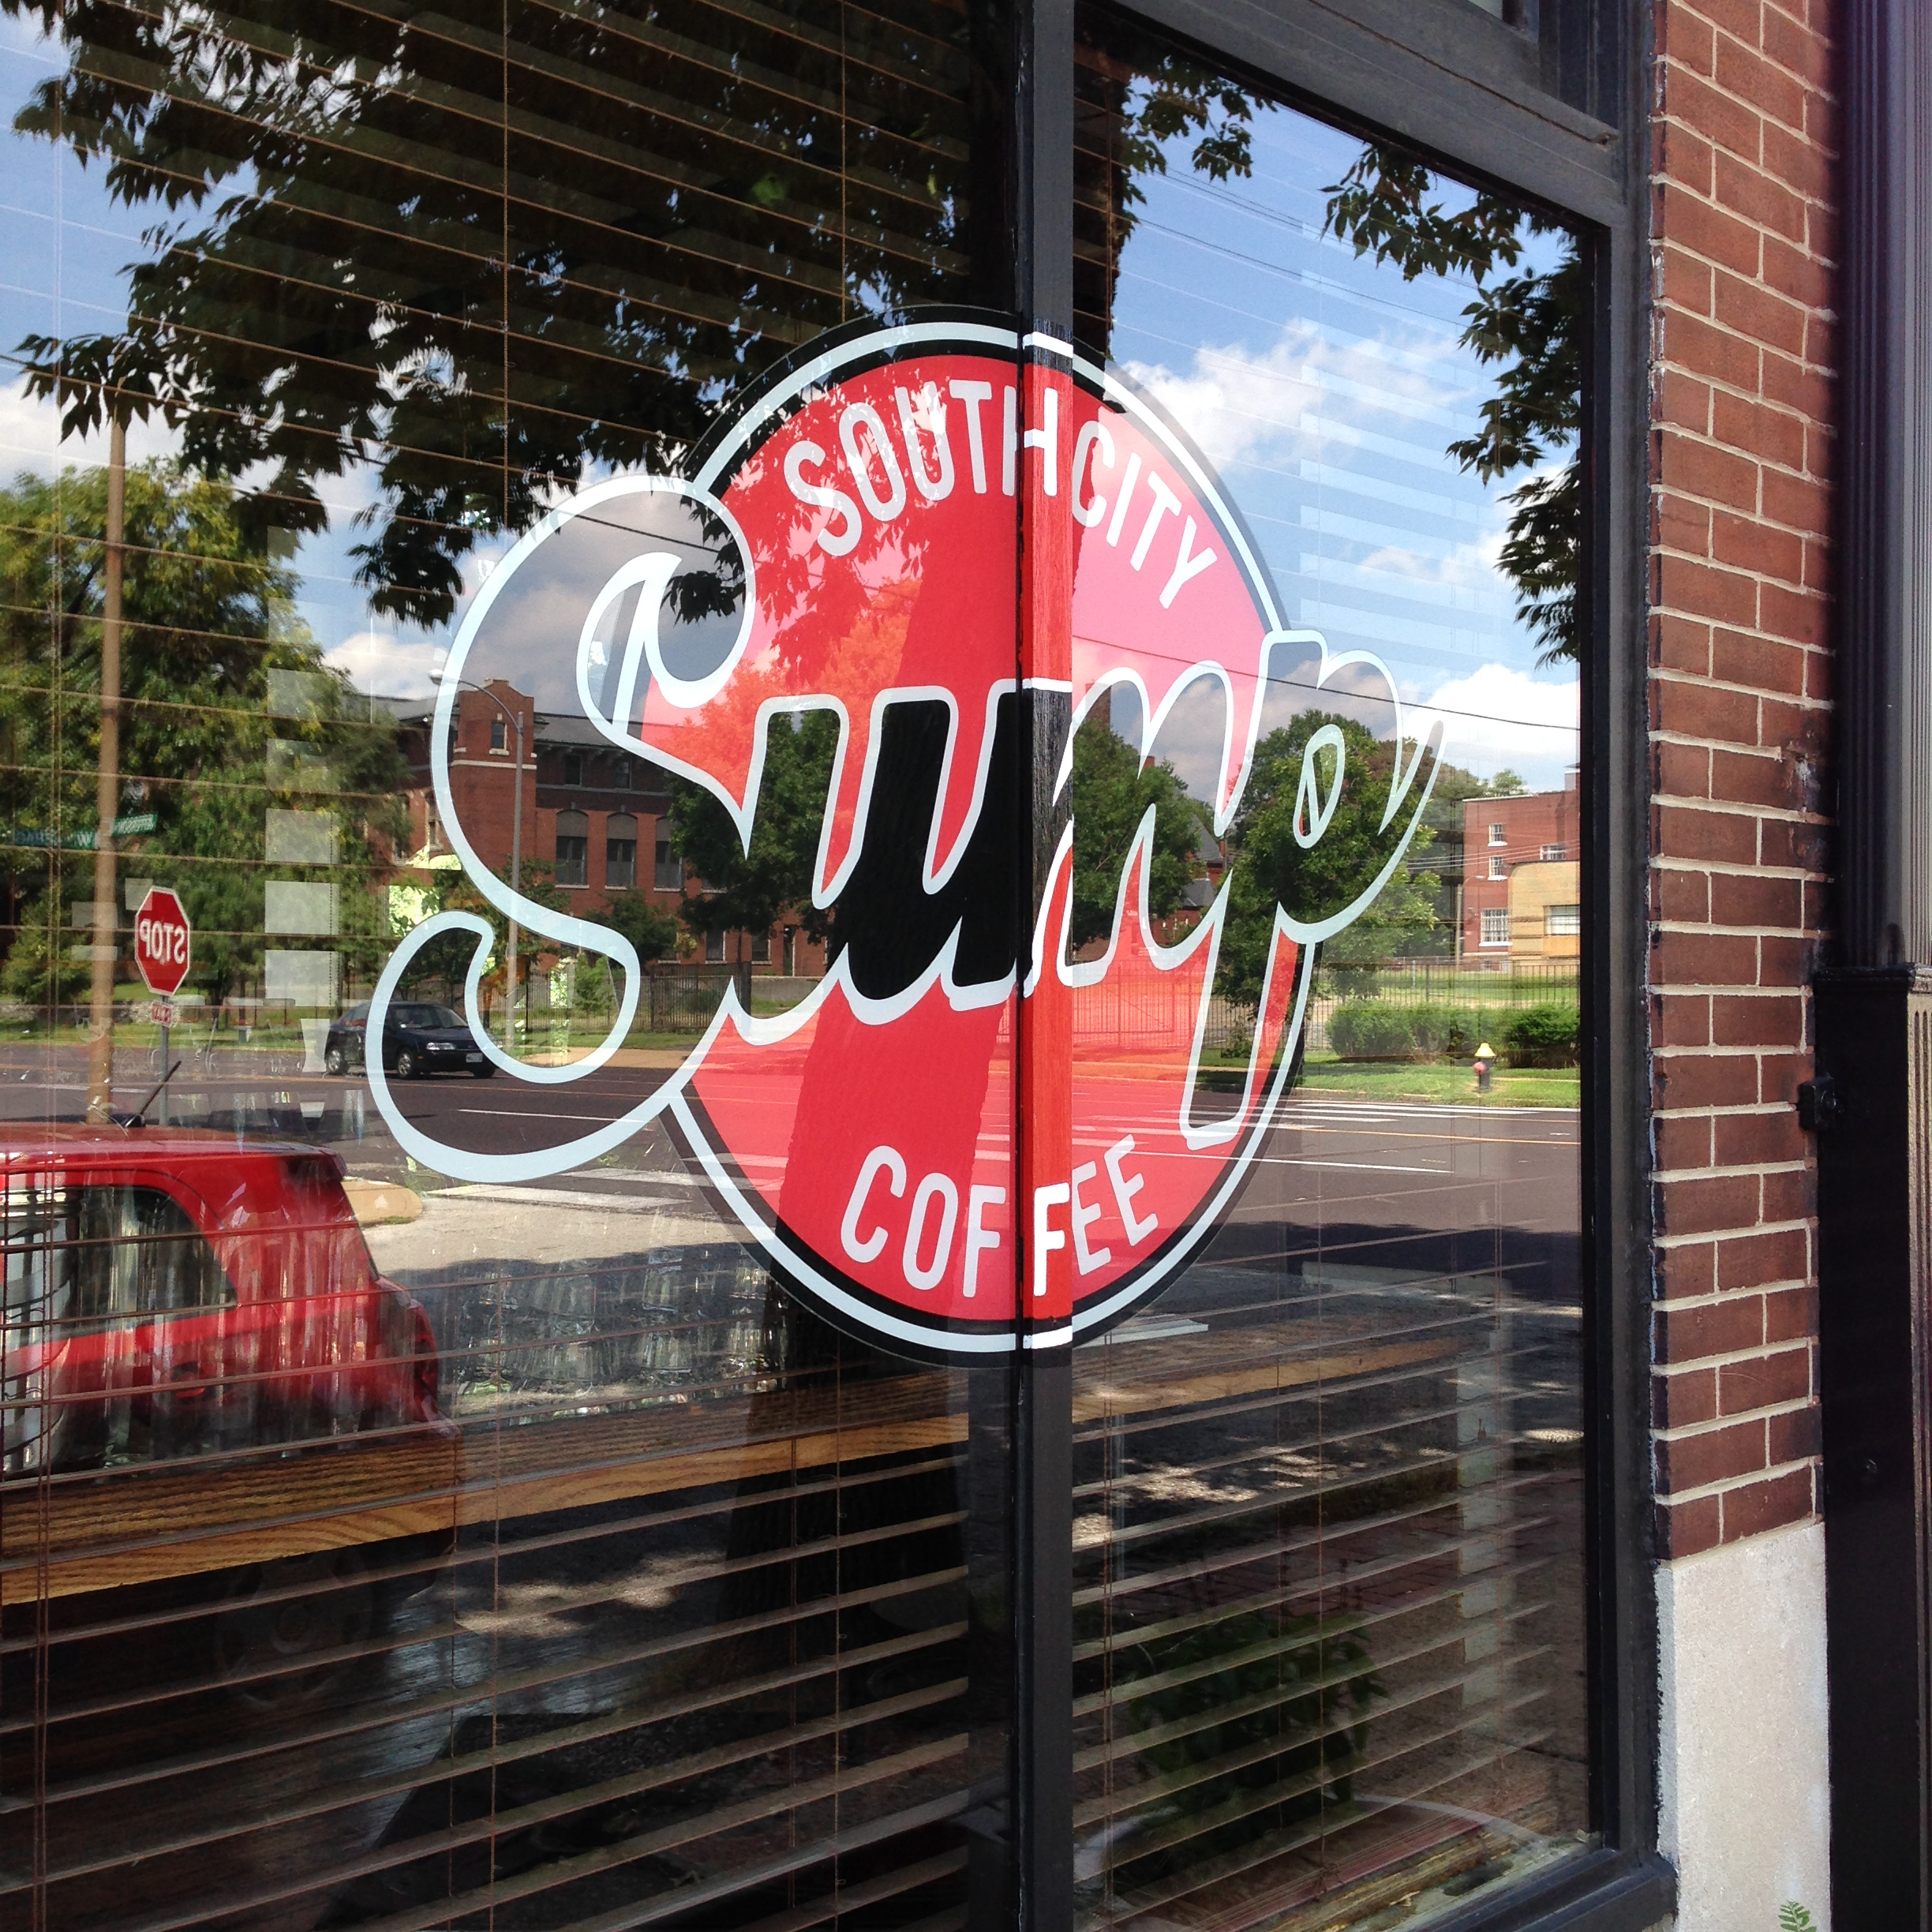 St louis in two hours sump coffee and blueprint coffee kc coffee that being said the specialty coffee that is in st louis is very good and i think that part of the industry is just going to continue to grow malvernweather